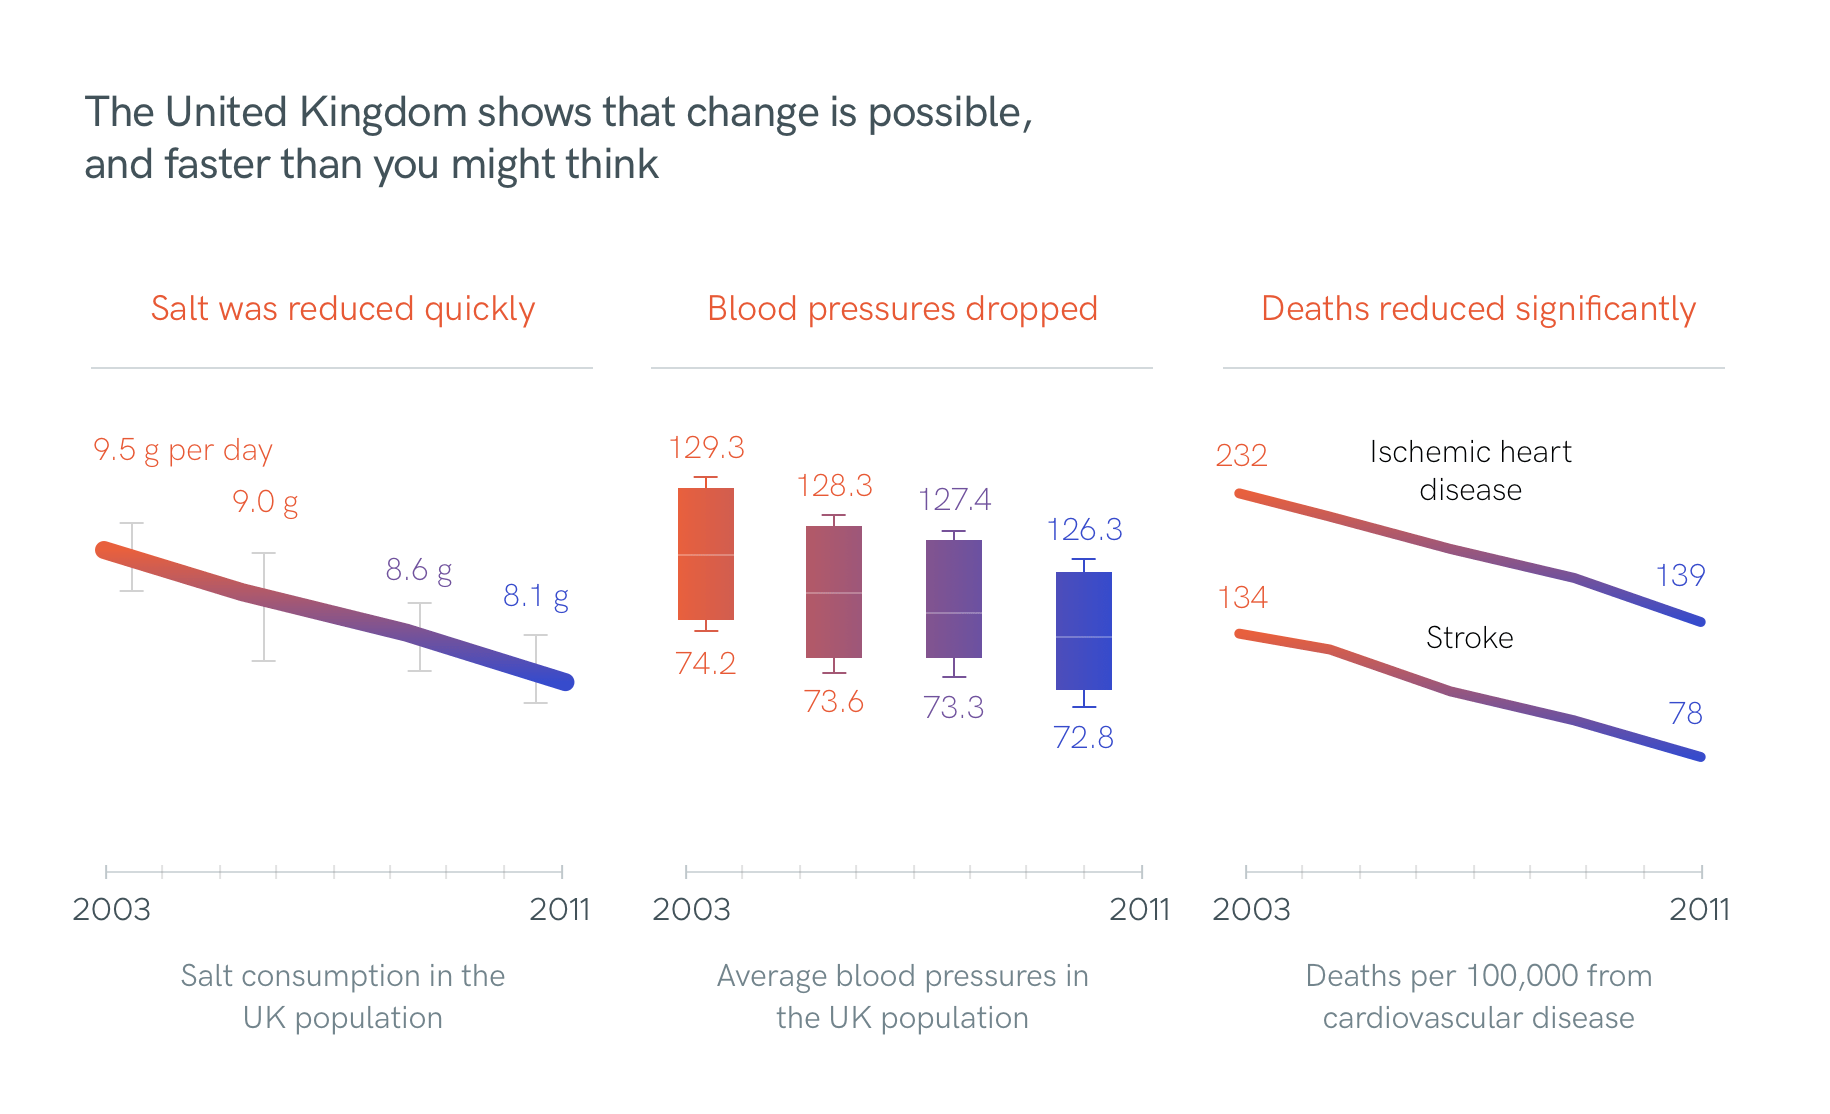 The United Kingdom shows that change is possible, and faster than you might think. Salt was reduced quickly, blood pressures dropped, and deaths from cardiovascular disease reduced significantly.